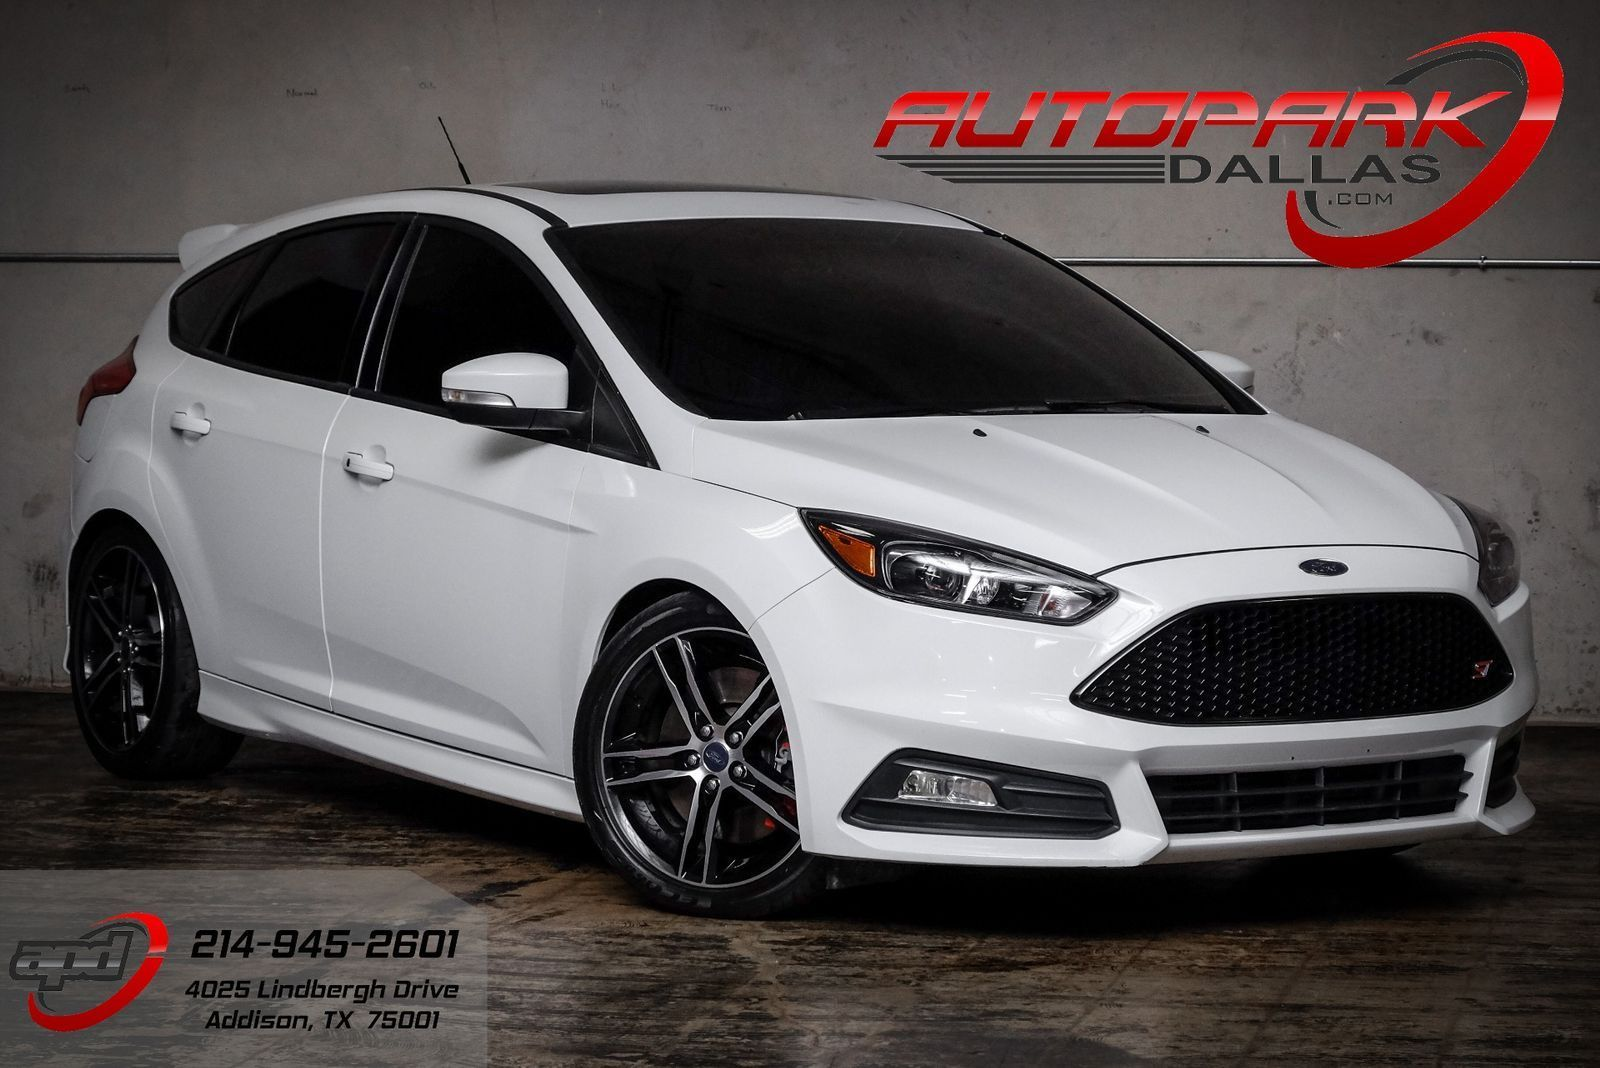 Awesome 2016 Ford Focus ST w/ Upgrades! COBB Tuned, Exhaust, Financing  Available! 2018-2019